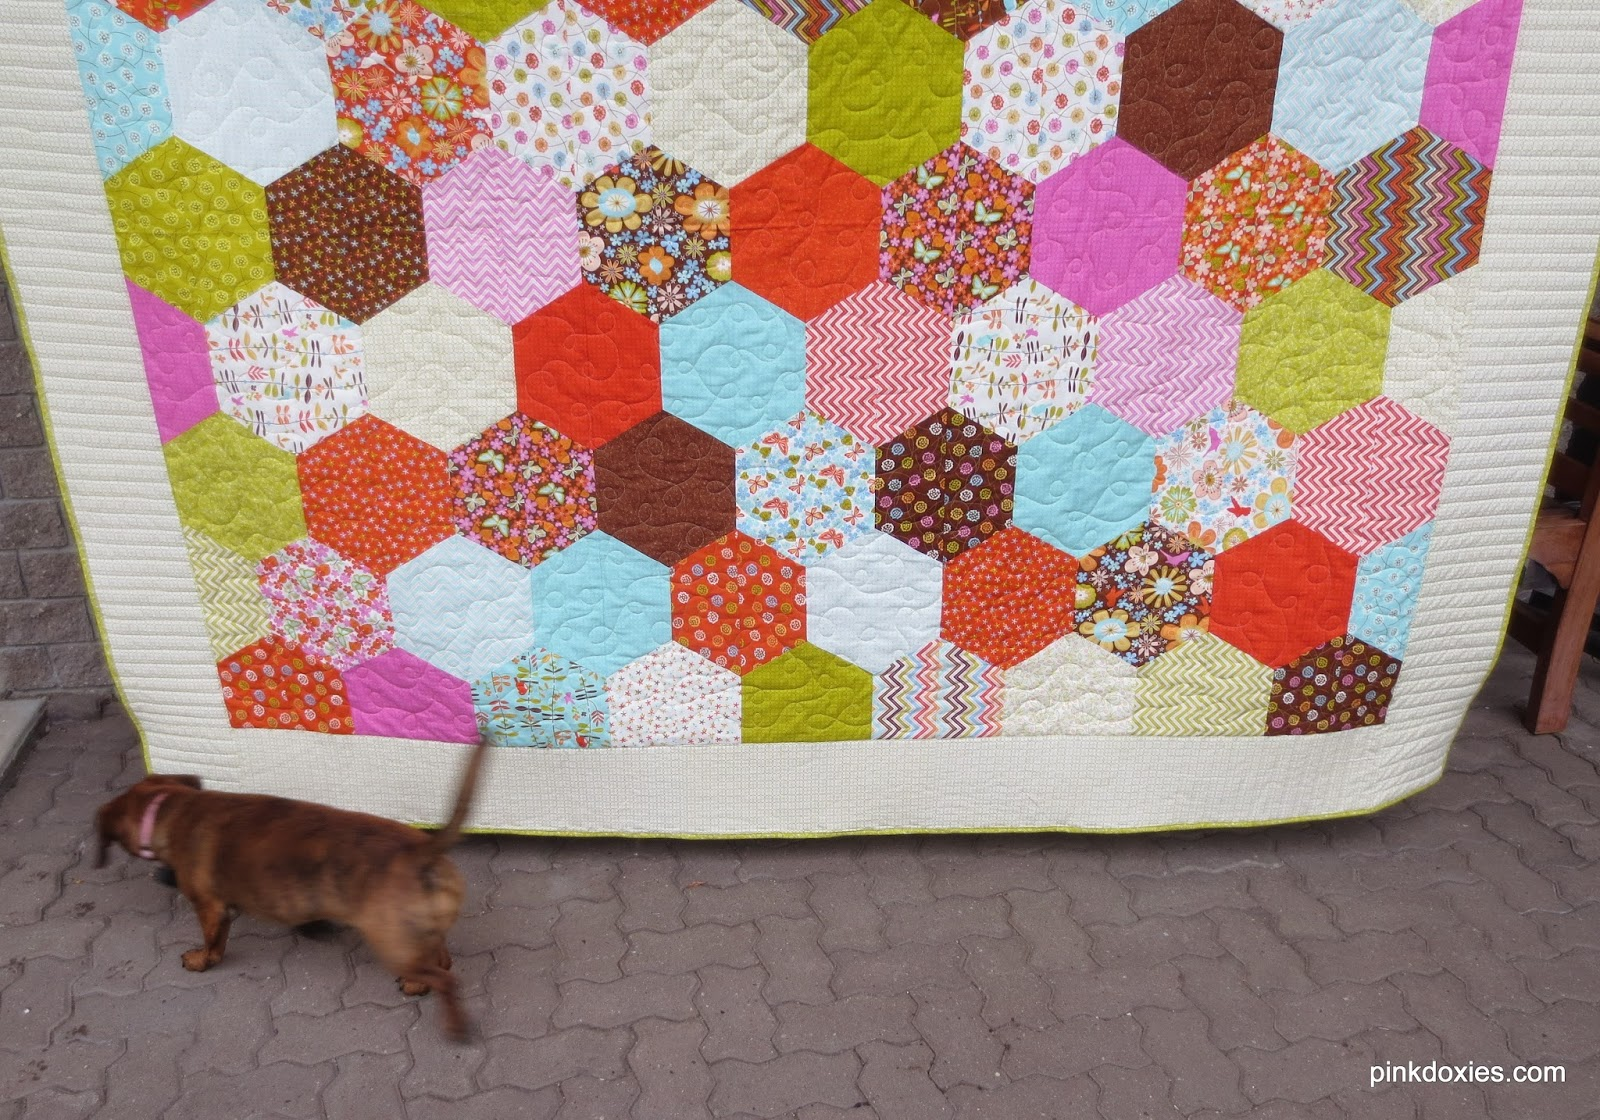 Julie Stocker Quilts At Pink Doxies Wrens Friends Quilt Finish Taking Perfect Pictures